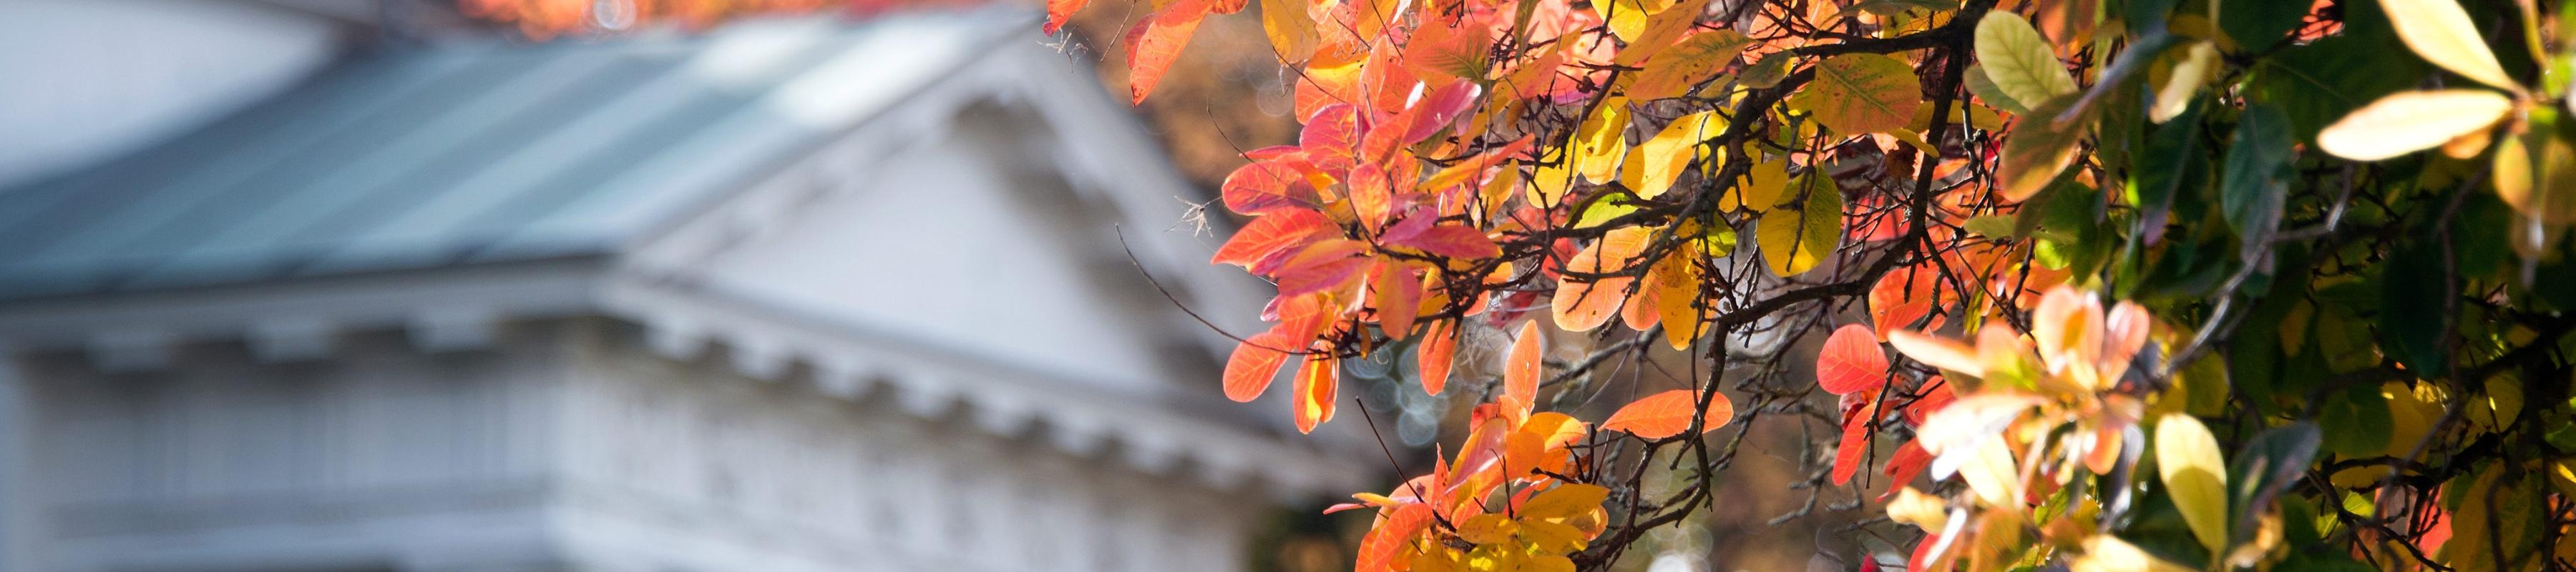 Autumn leaves of American smokewood (Cotinus obovatus) in front of Temple of Bellona at Kew Gardens